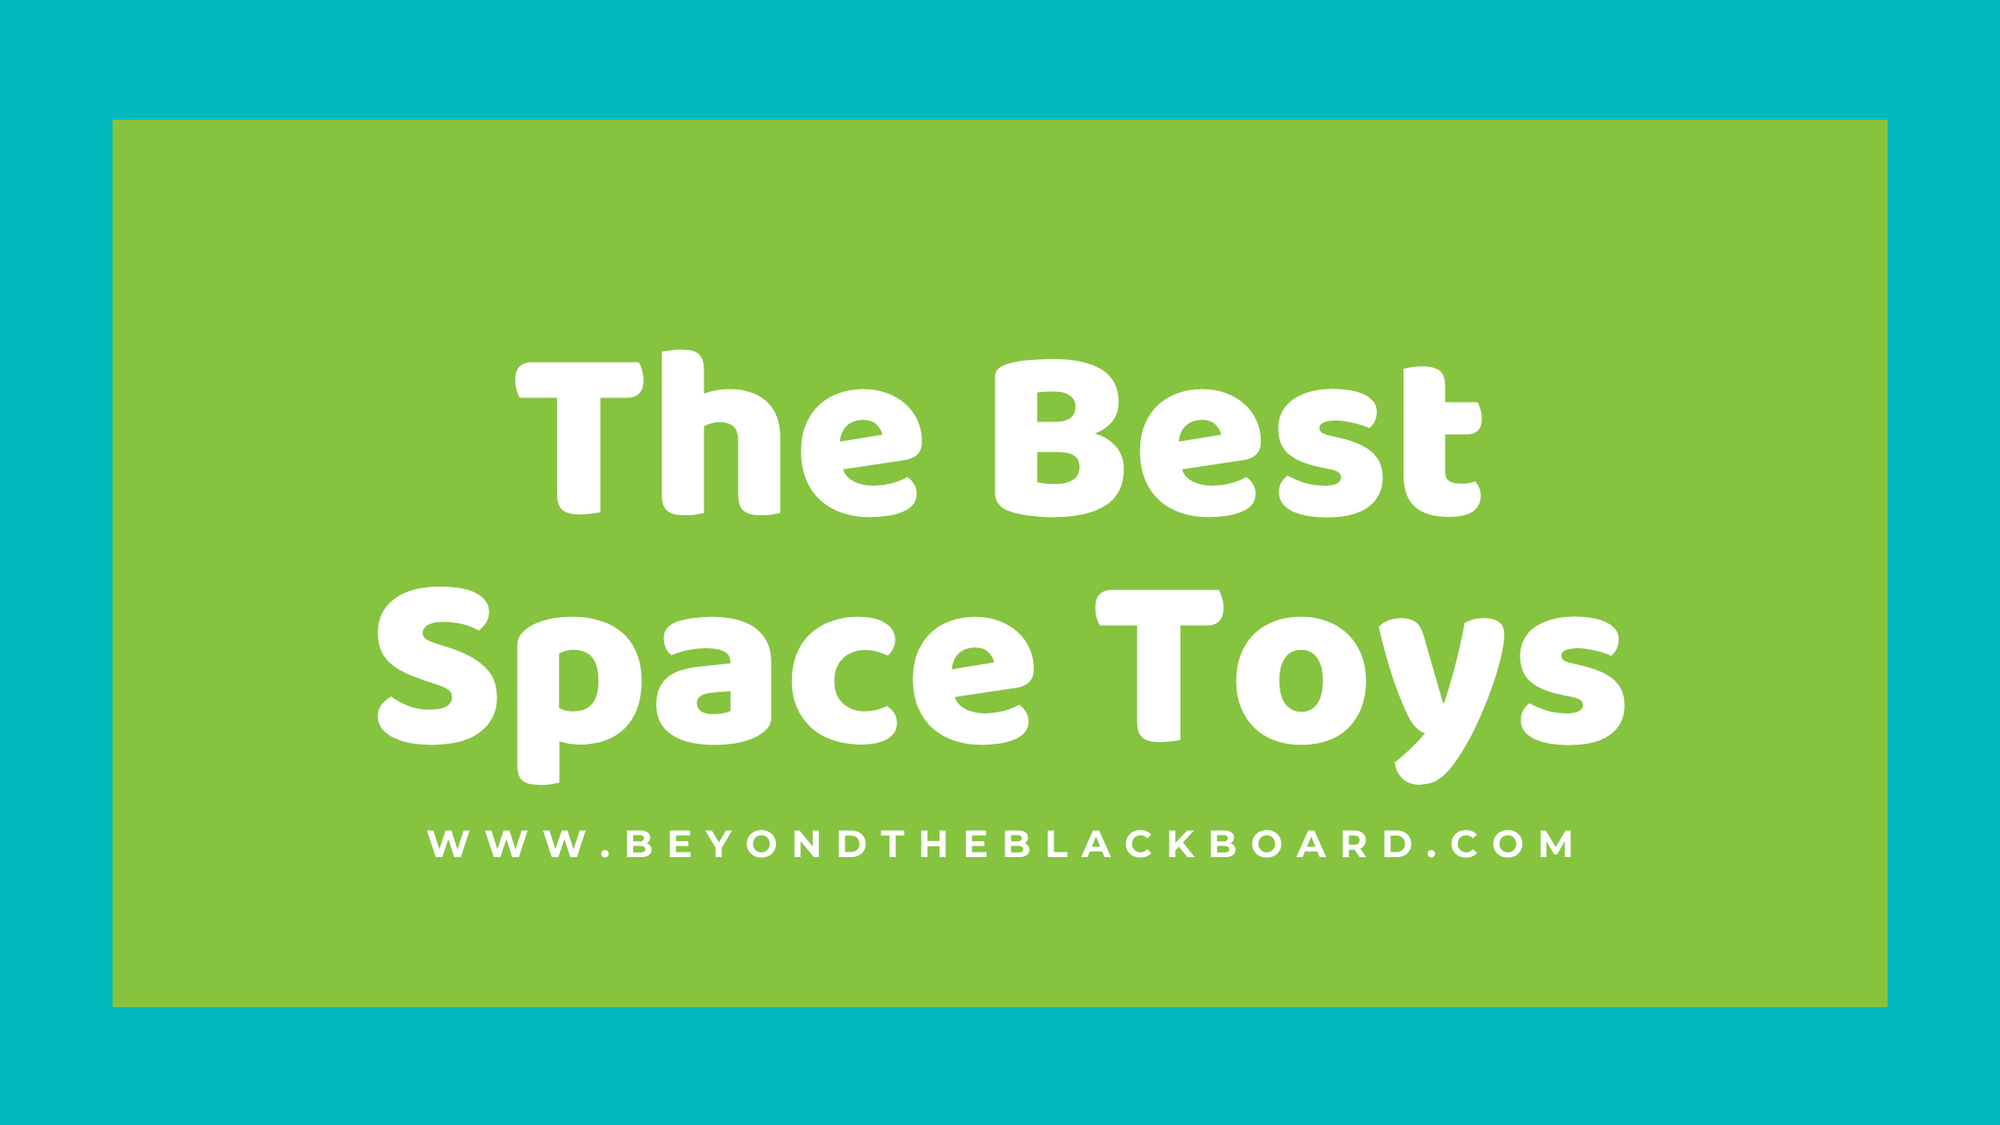 The Best Space Toys, www.beyondtheblackboard.com